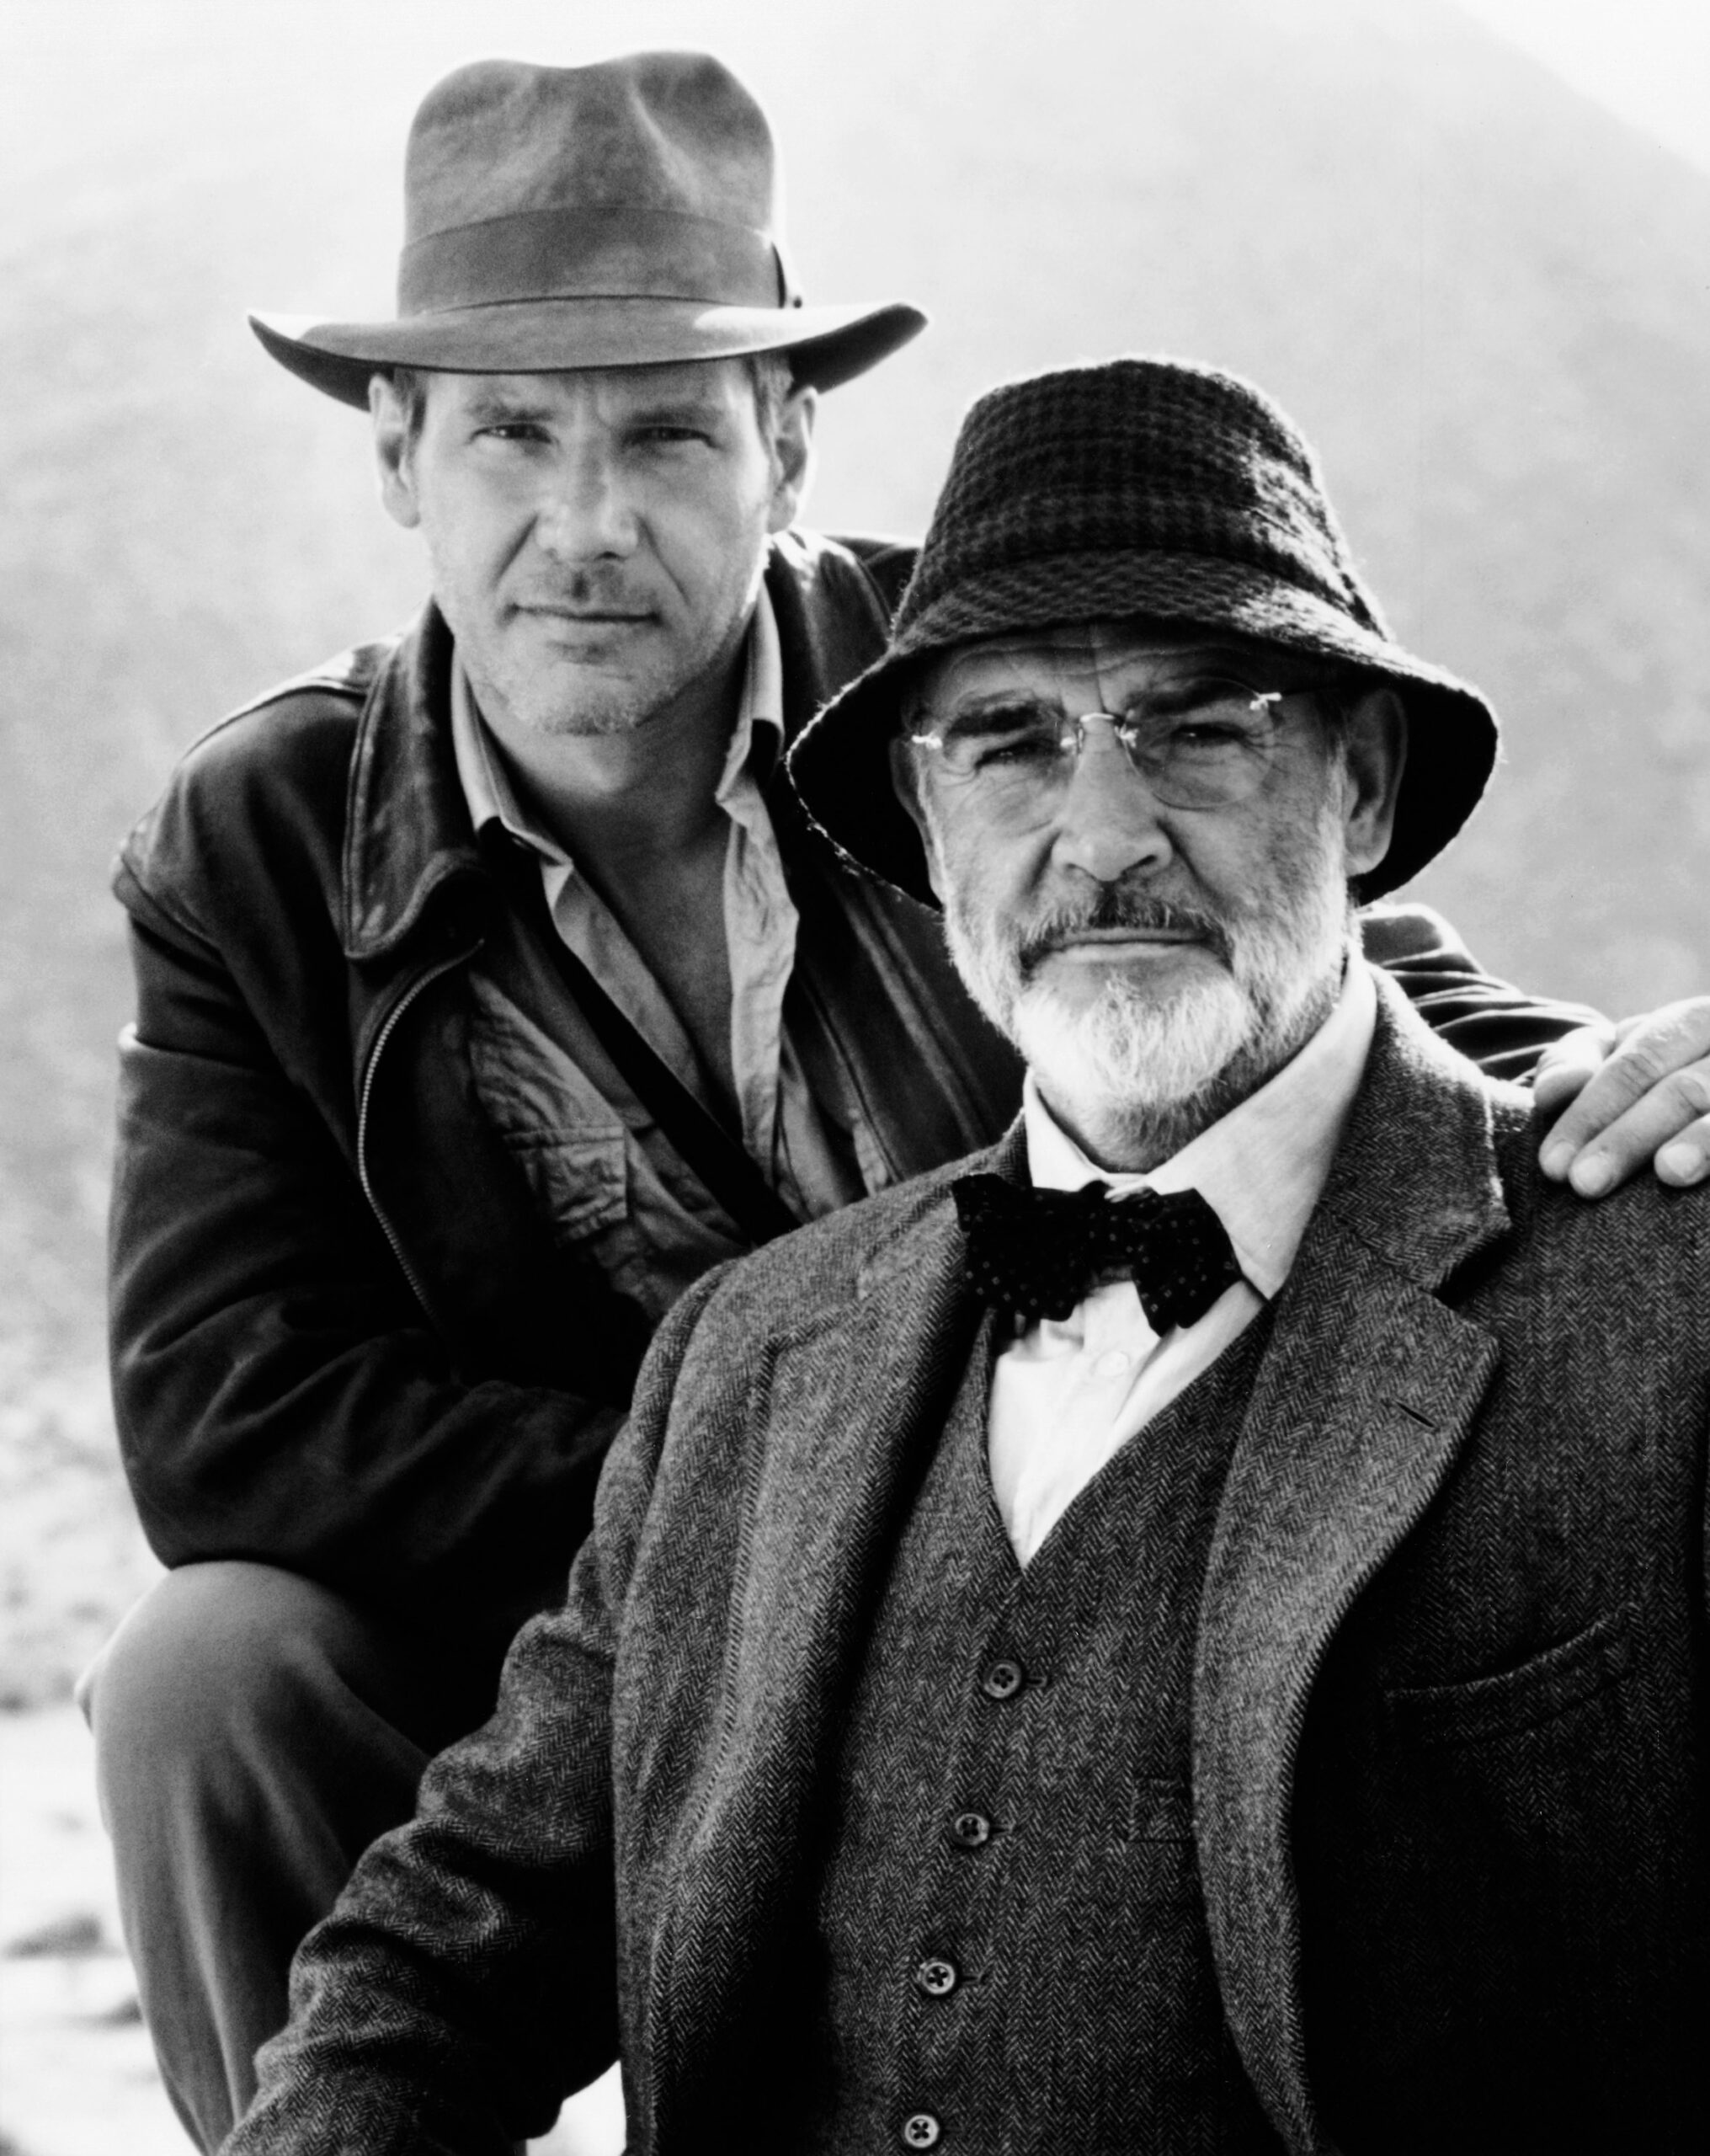 Harrison Ford Remembers Fun Friendship With 'Indiana Jones' Co-Star Sean Connery